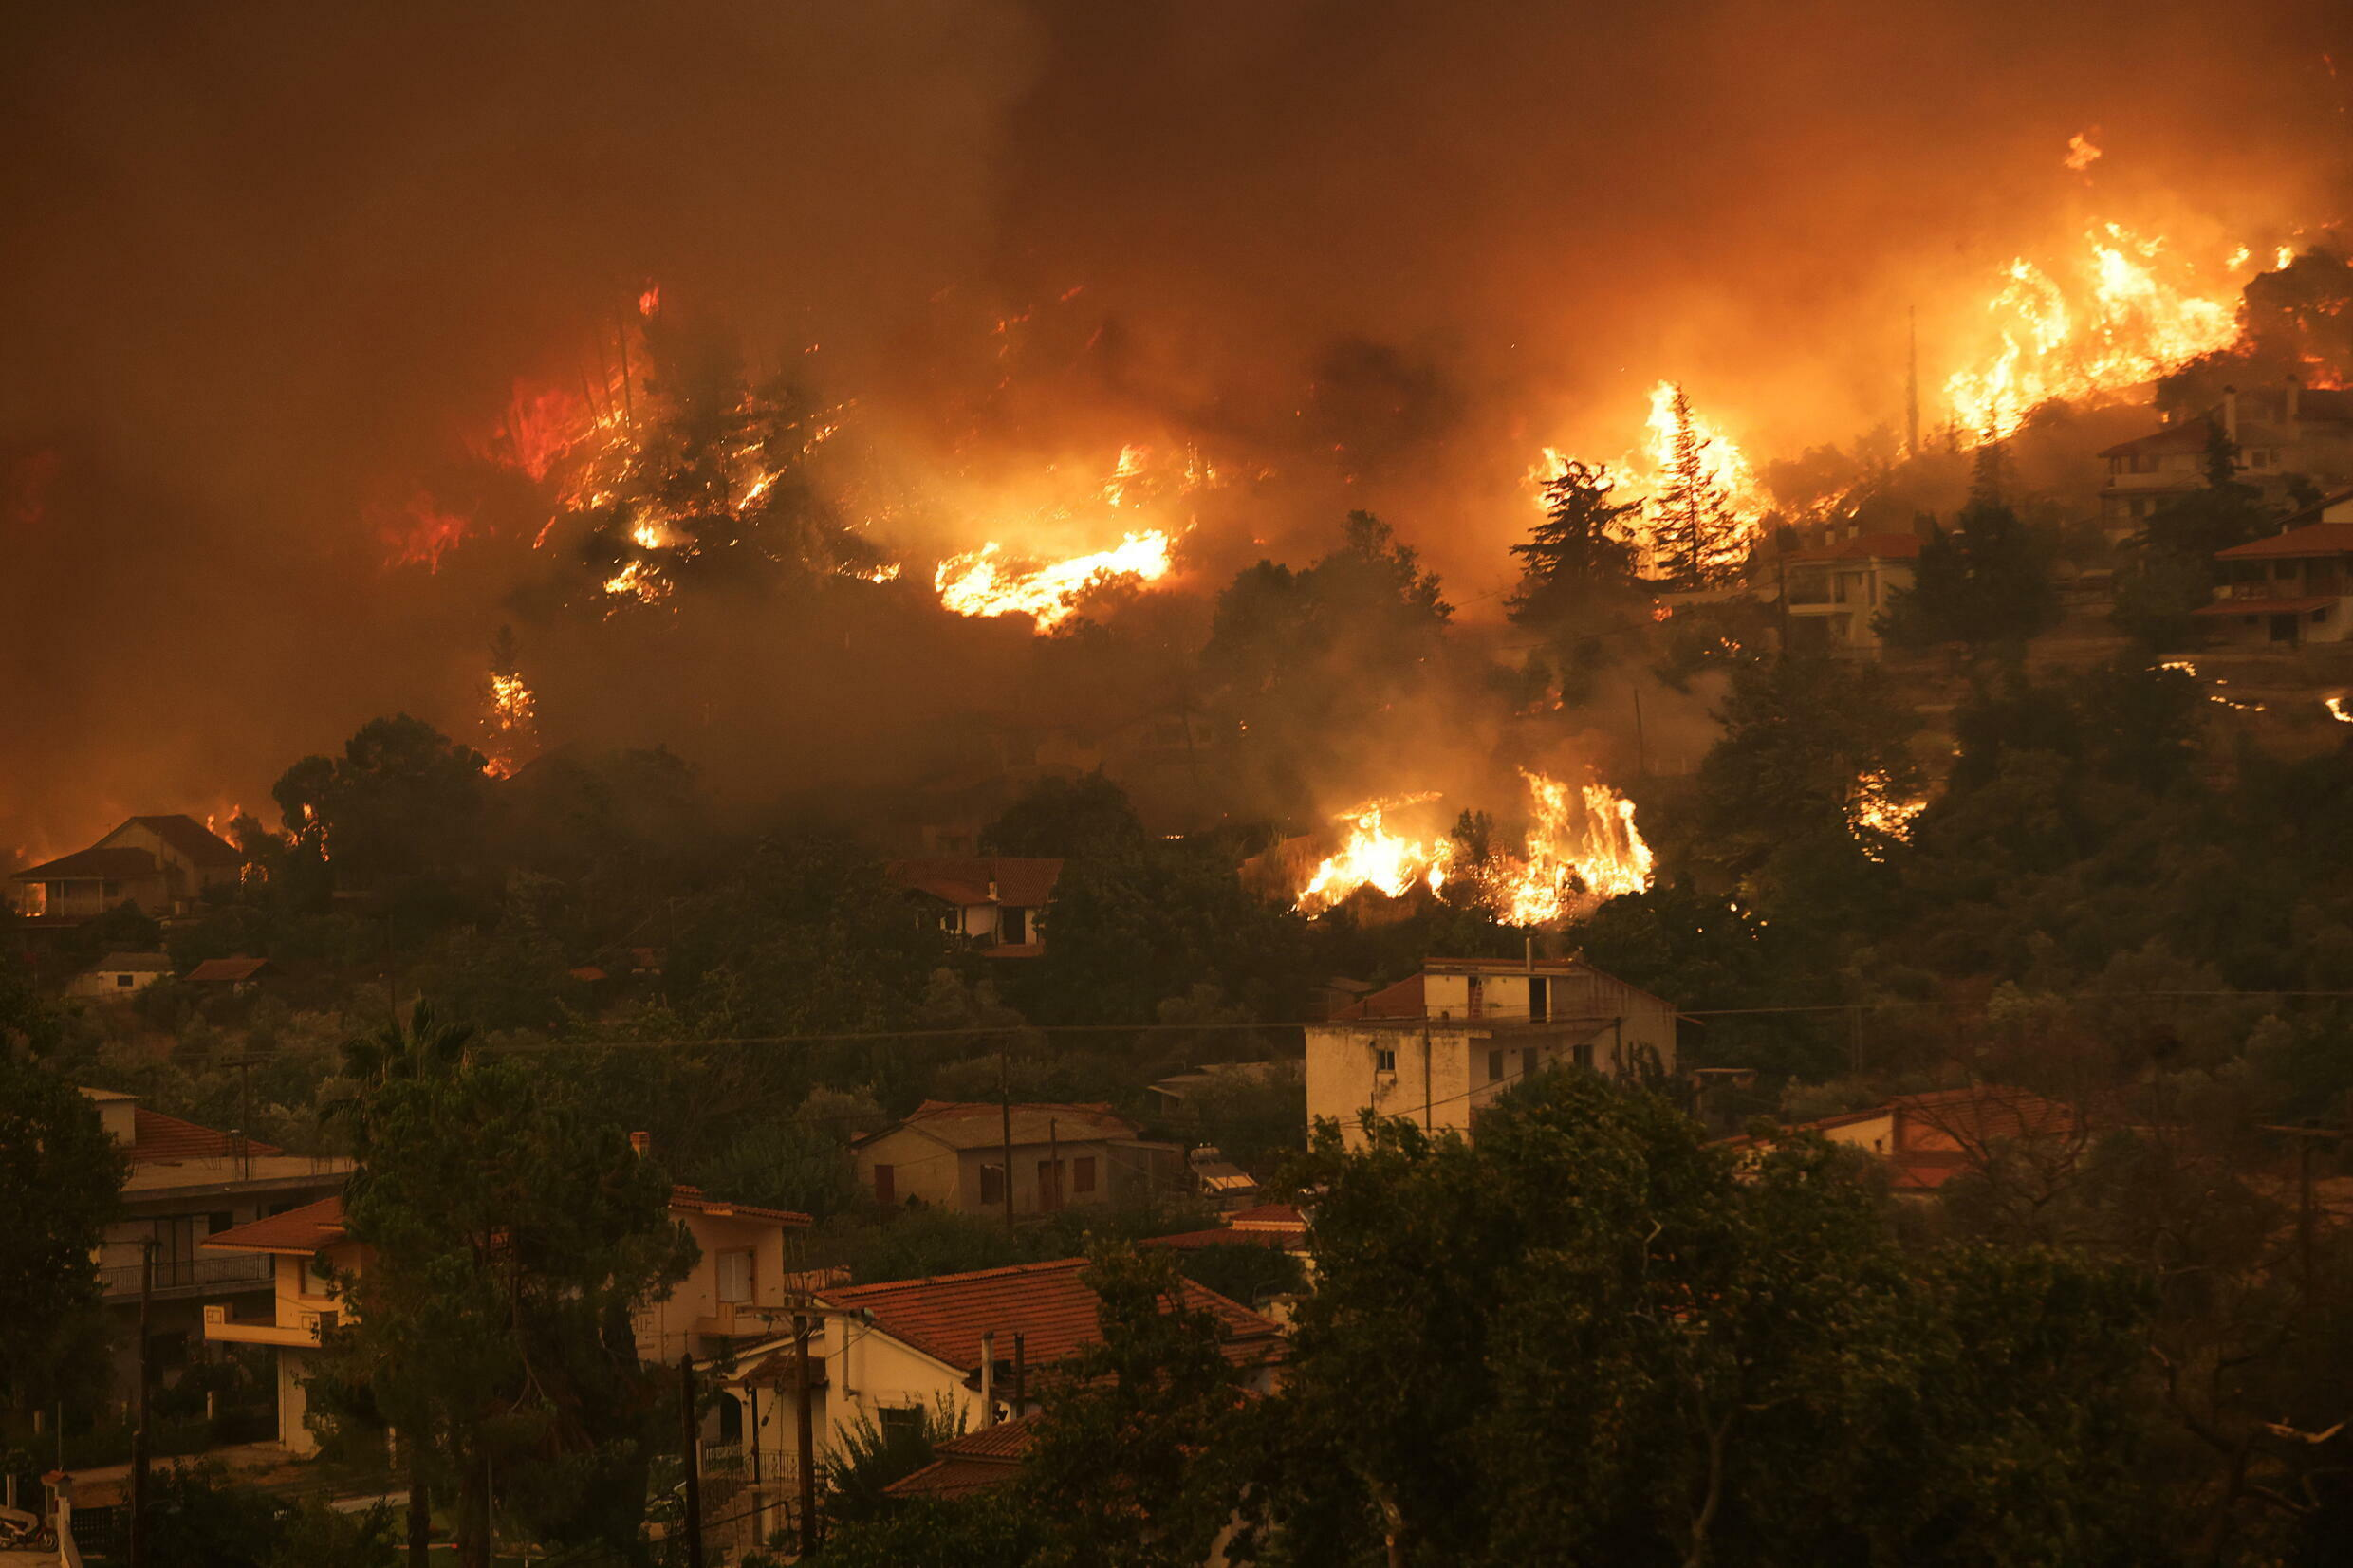 2021-08-08T144251Z_1128458525_RC211P9Q7UKW_RTRMADP_3_GREECE-WILDFIRES